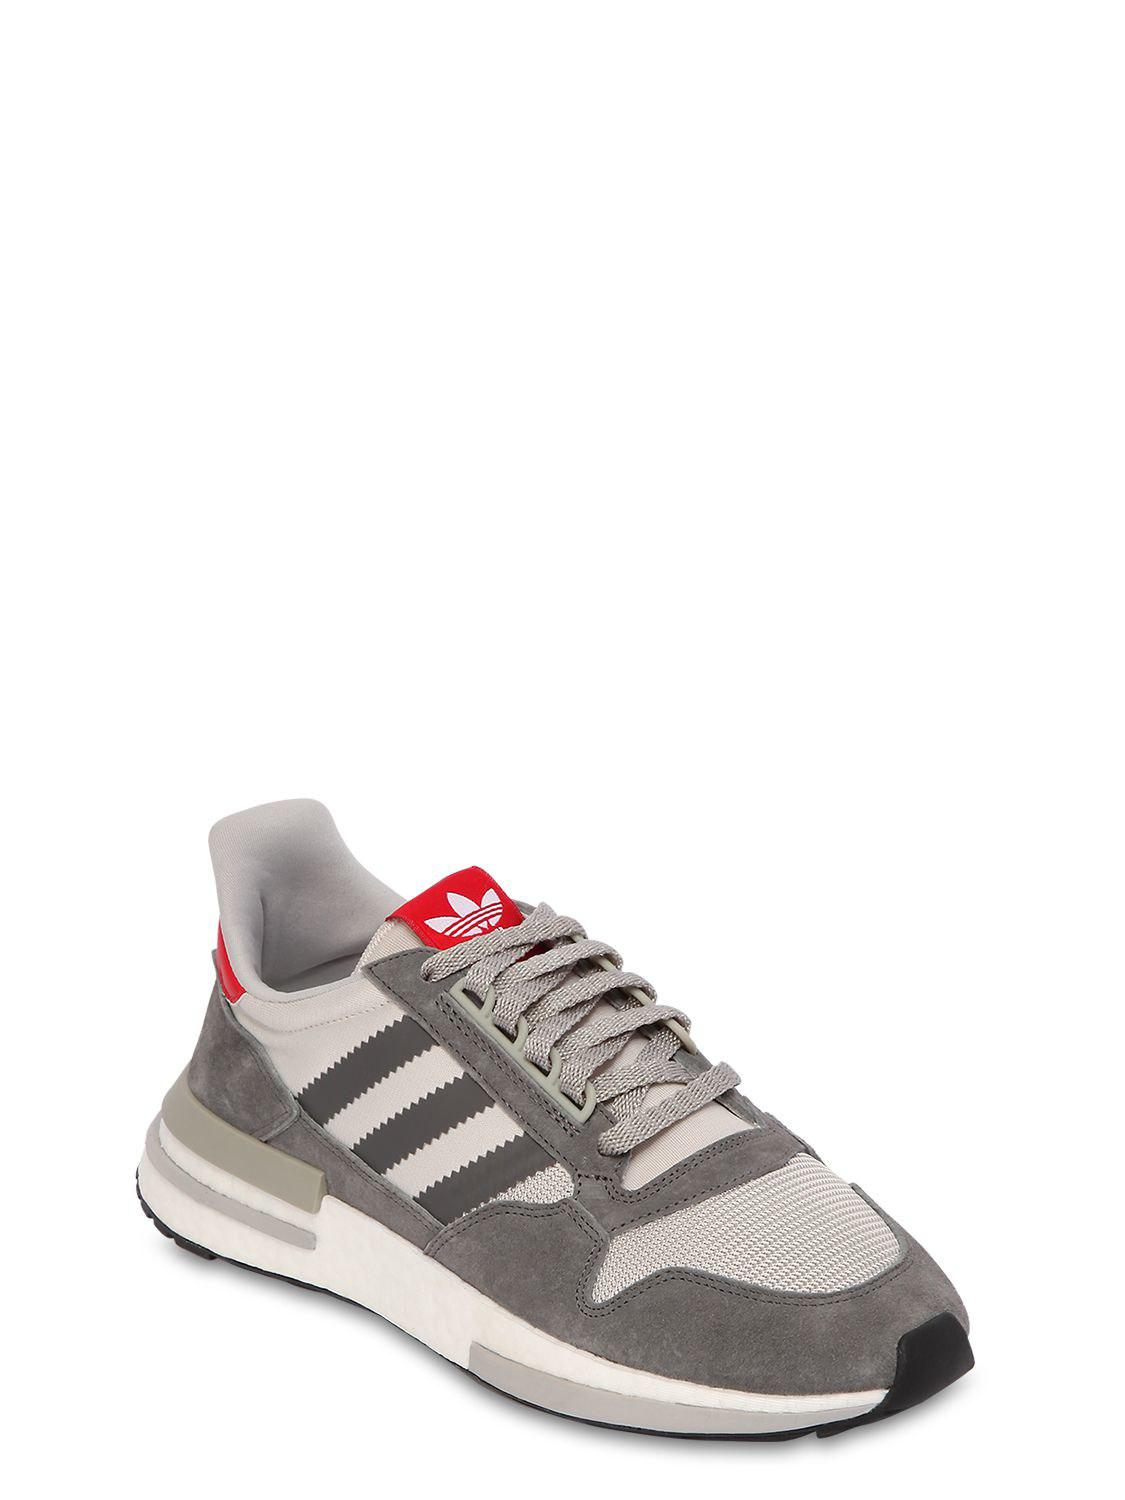 Lyst - adidas Originals Zx 500 Sneakers in Gray for Men - Save 57% 441b6a7f2eed6